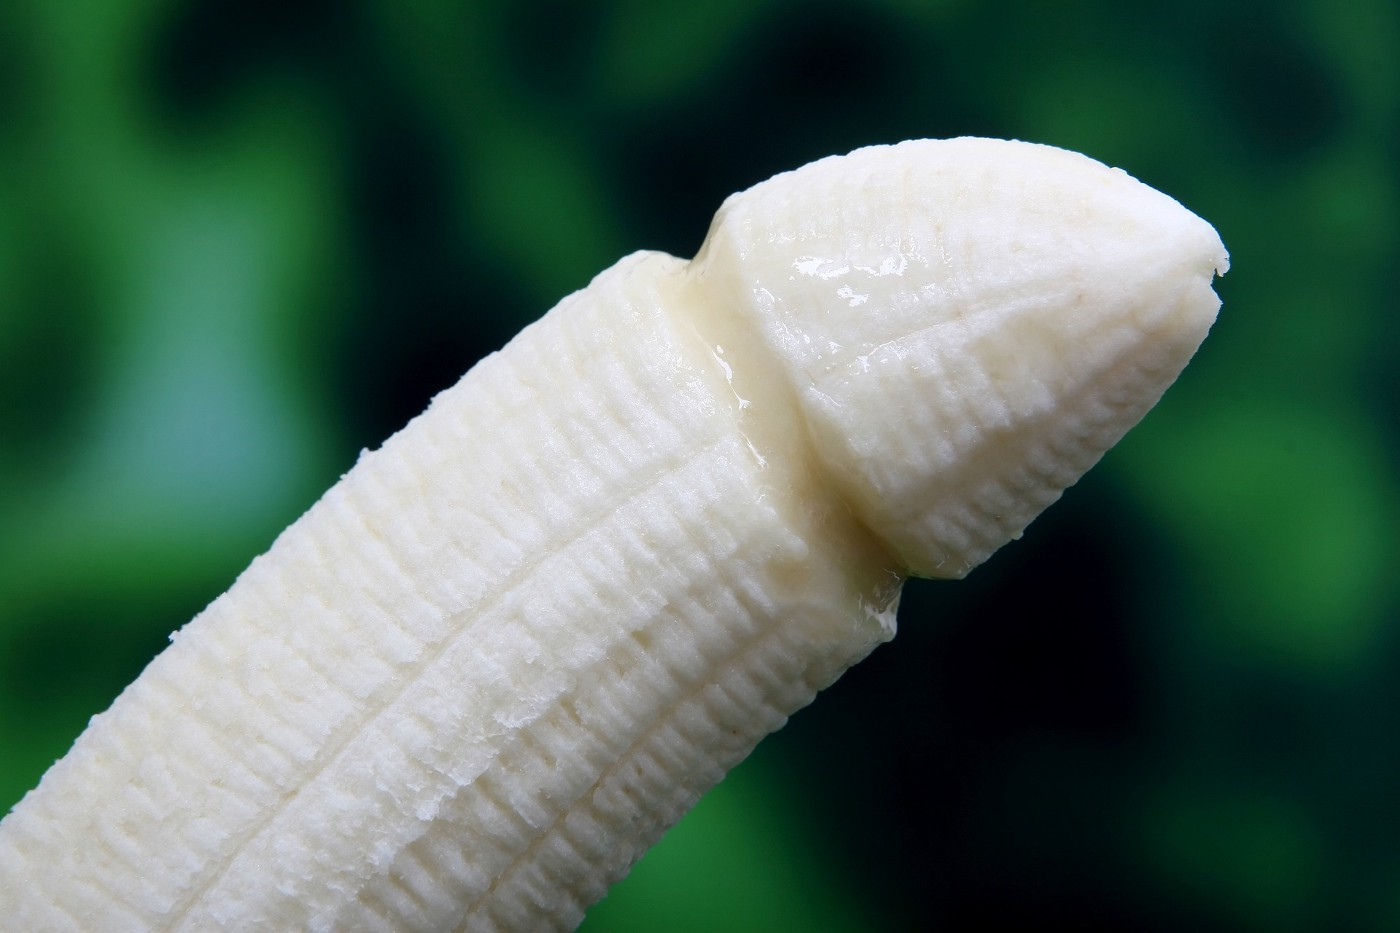 Close-up of a banana carved to look like a penis.